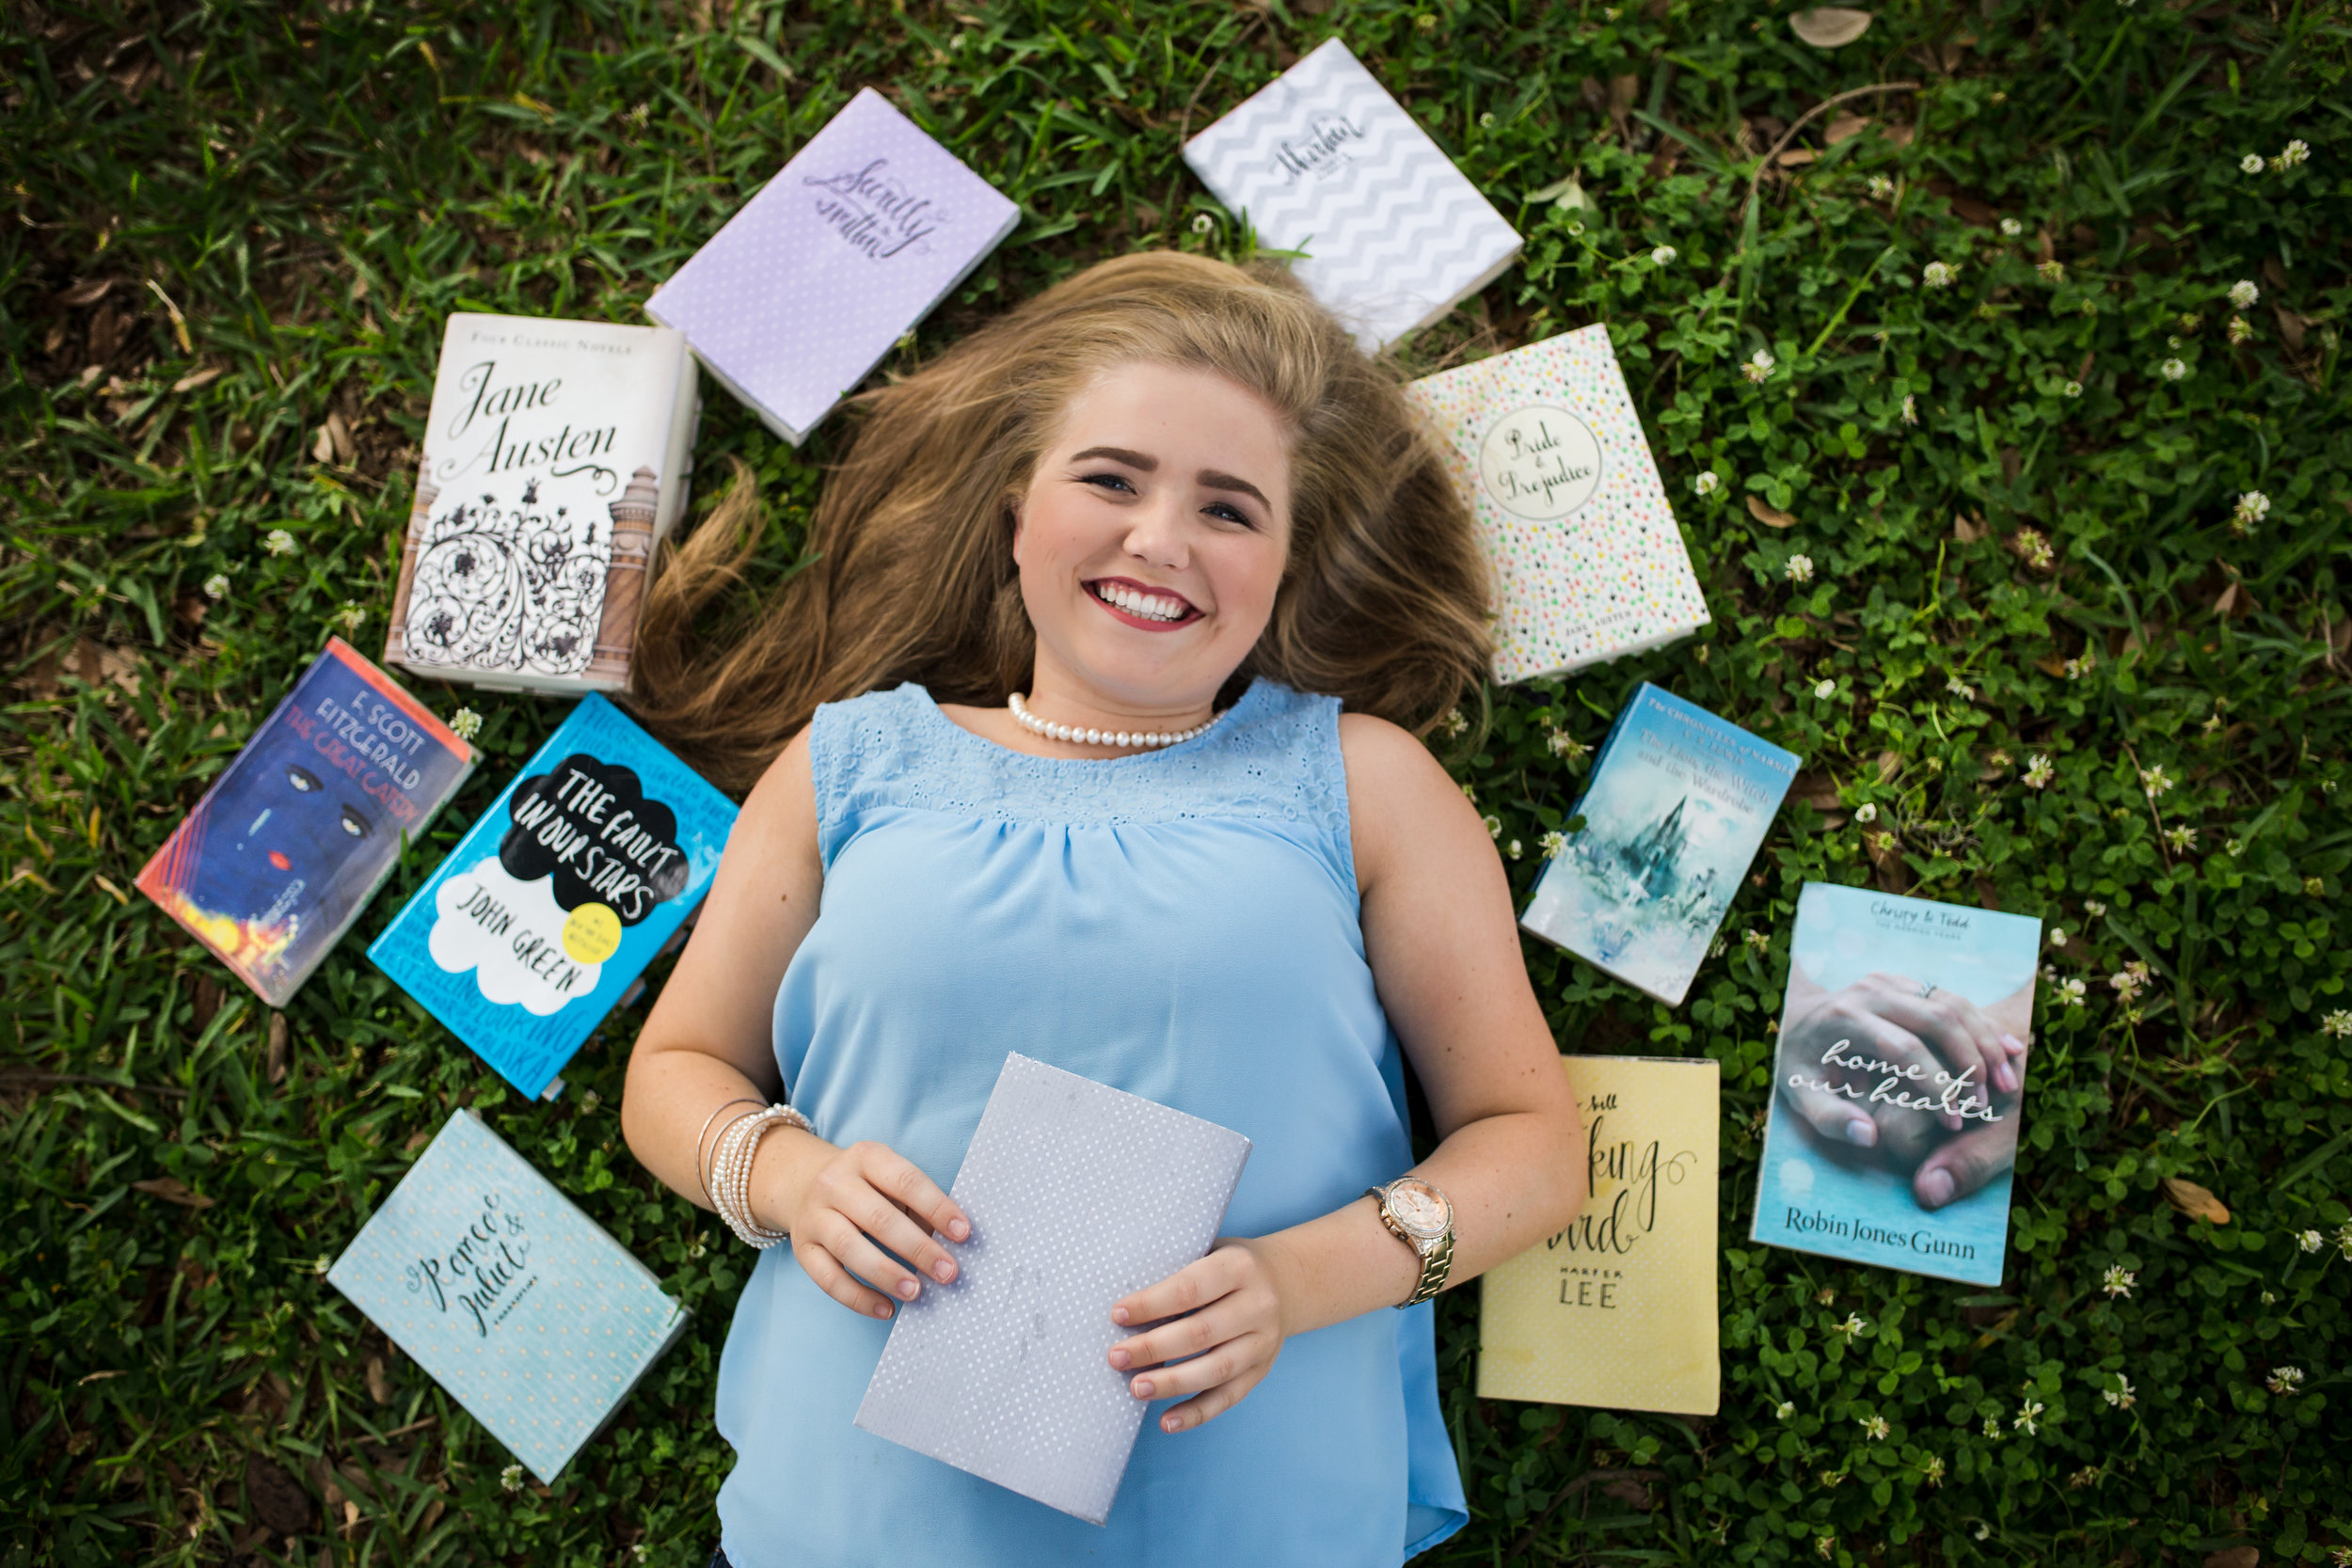 High School Senior Session book inspired Session